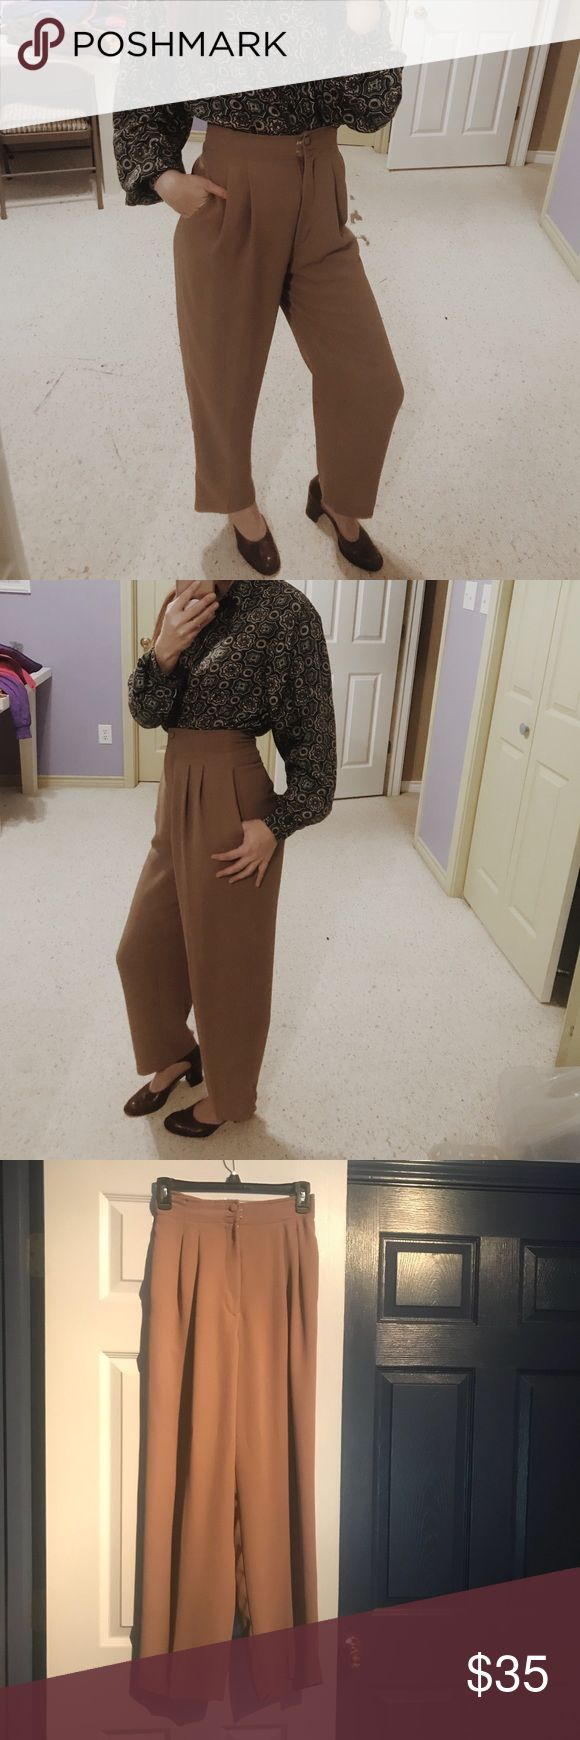 High waisted dress pants Super cute! Definitely a style statement! Pockets on both sides. Missing one button on the top but isn't really noticeable and can be easily fixed. Not UO, labeled that for exposure. Urban Outfitters Pants